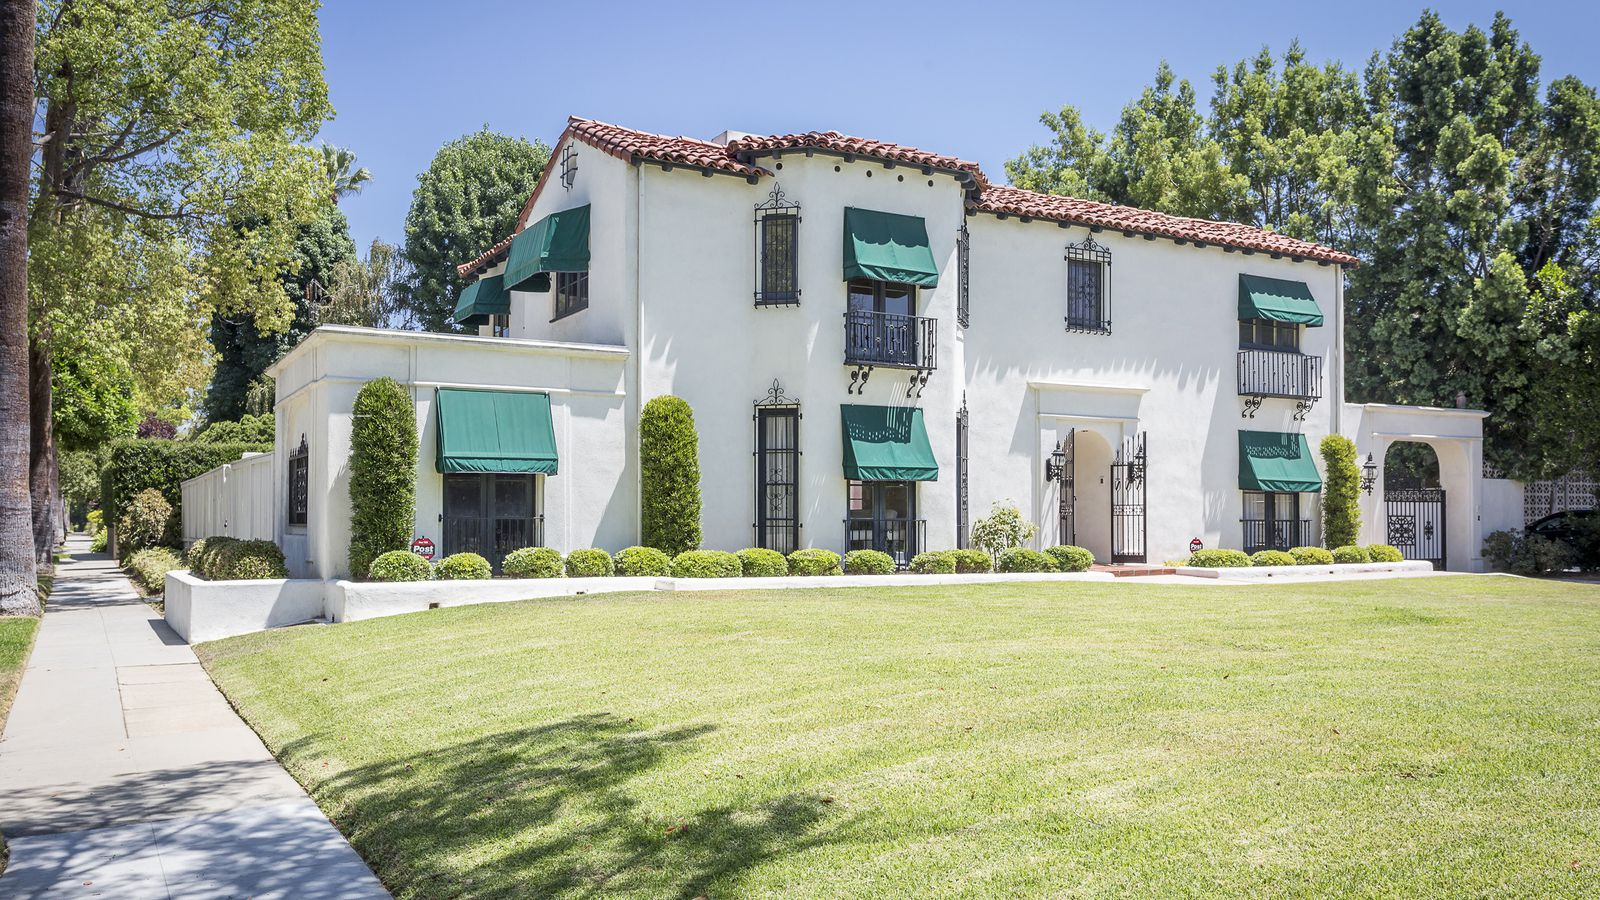 Pasadena Spanish Colonial Revival Style Home Full Of